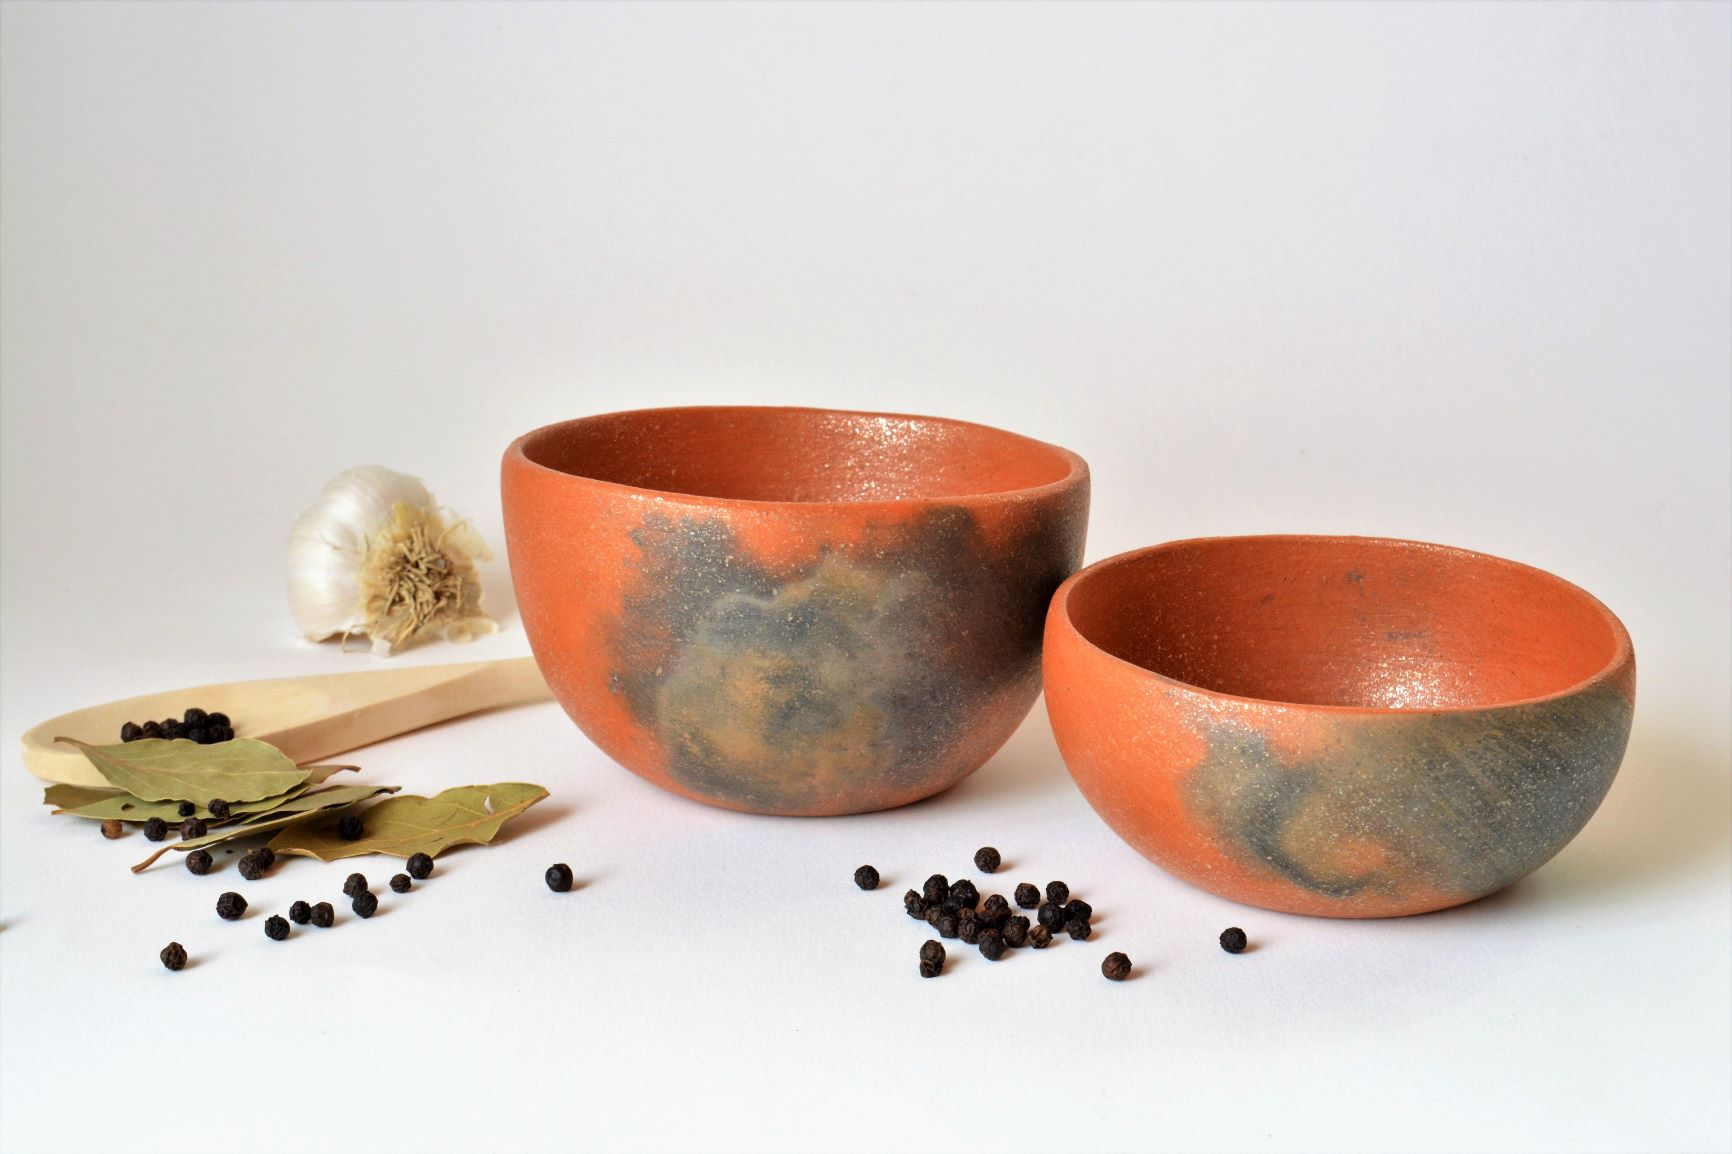 Two small bowls and spices.JPG